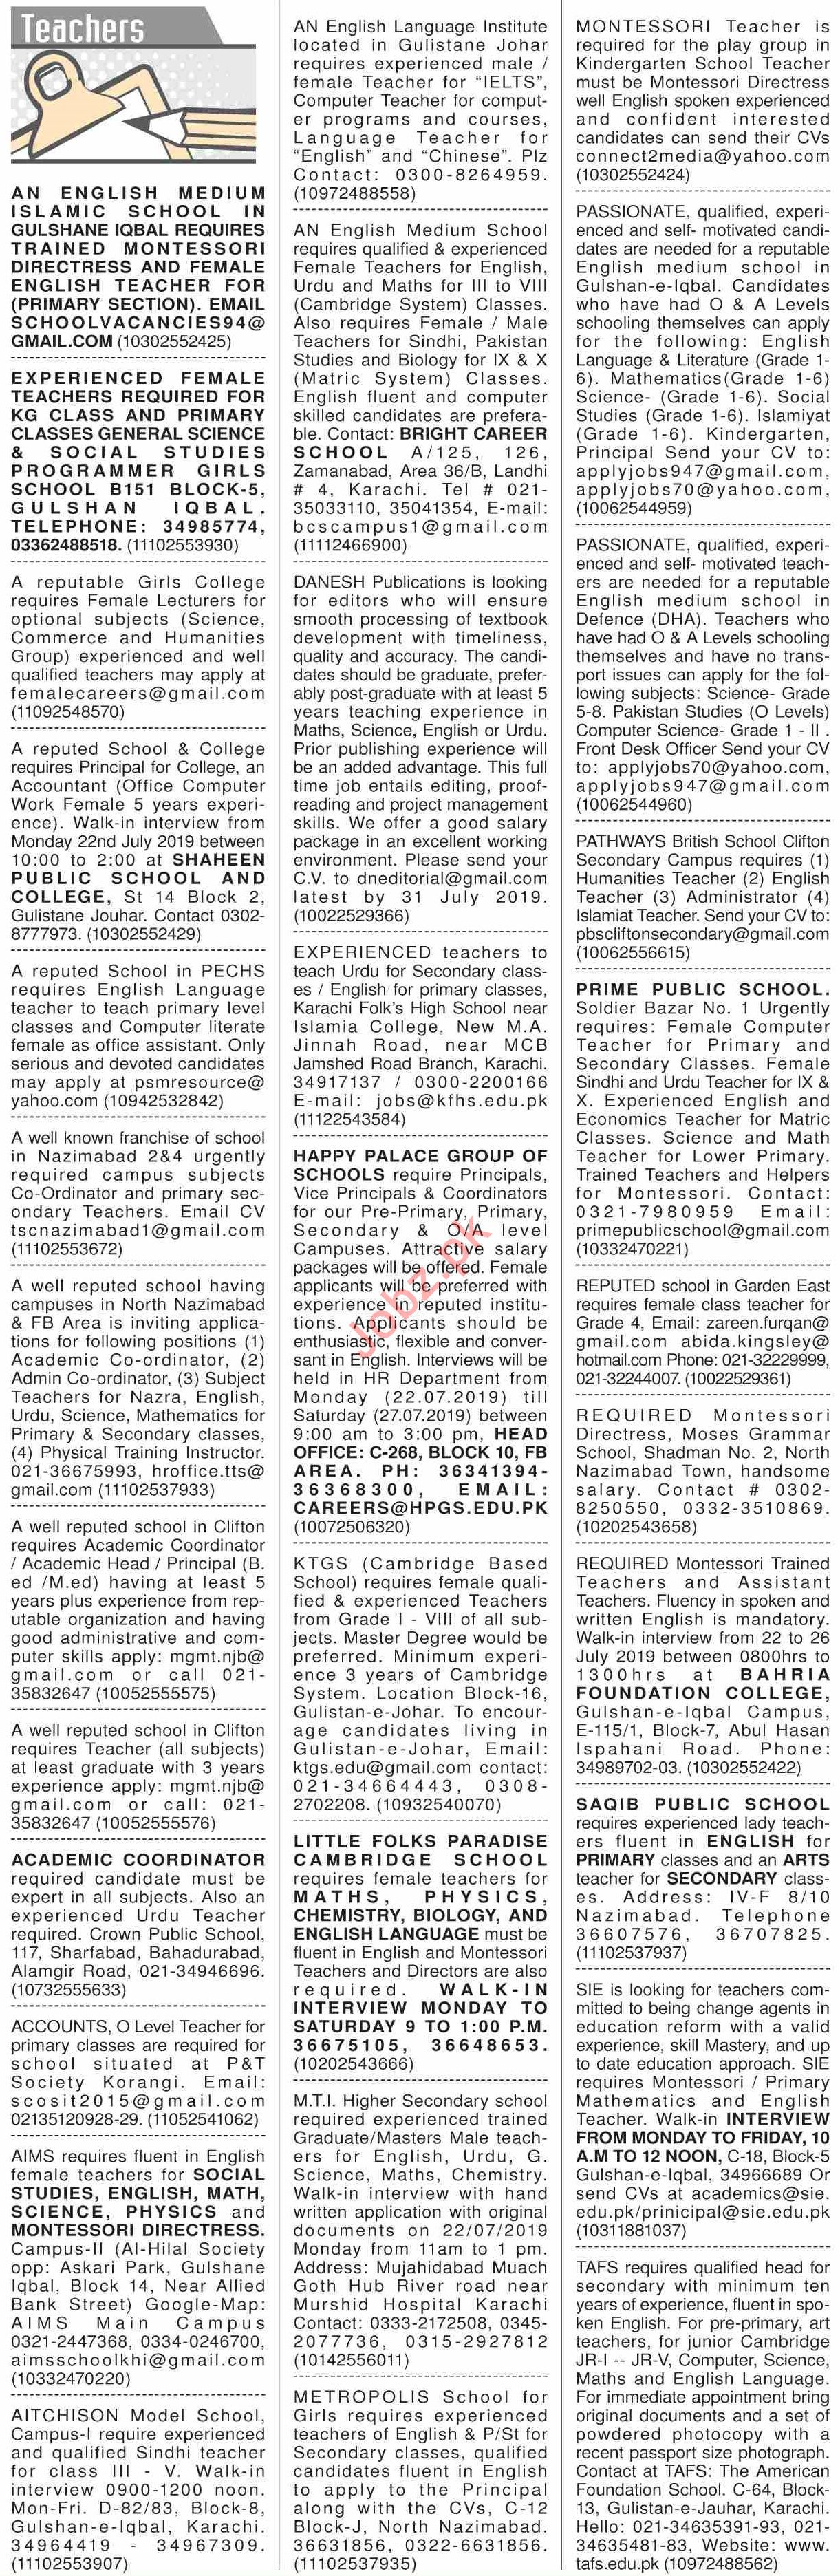 Dawn Sunday Classified Ads 21st July 2019 for Teachers 2019 Job